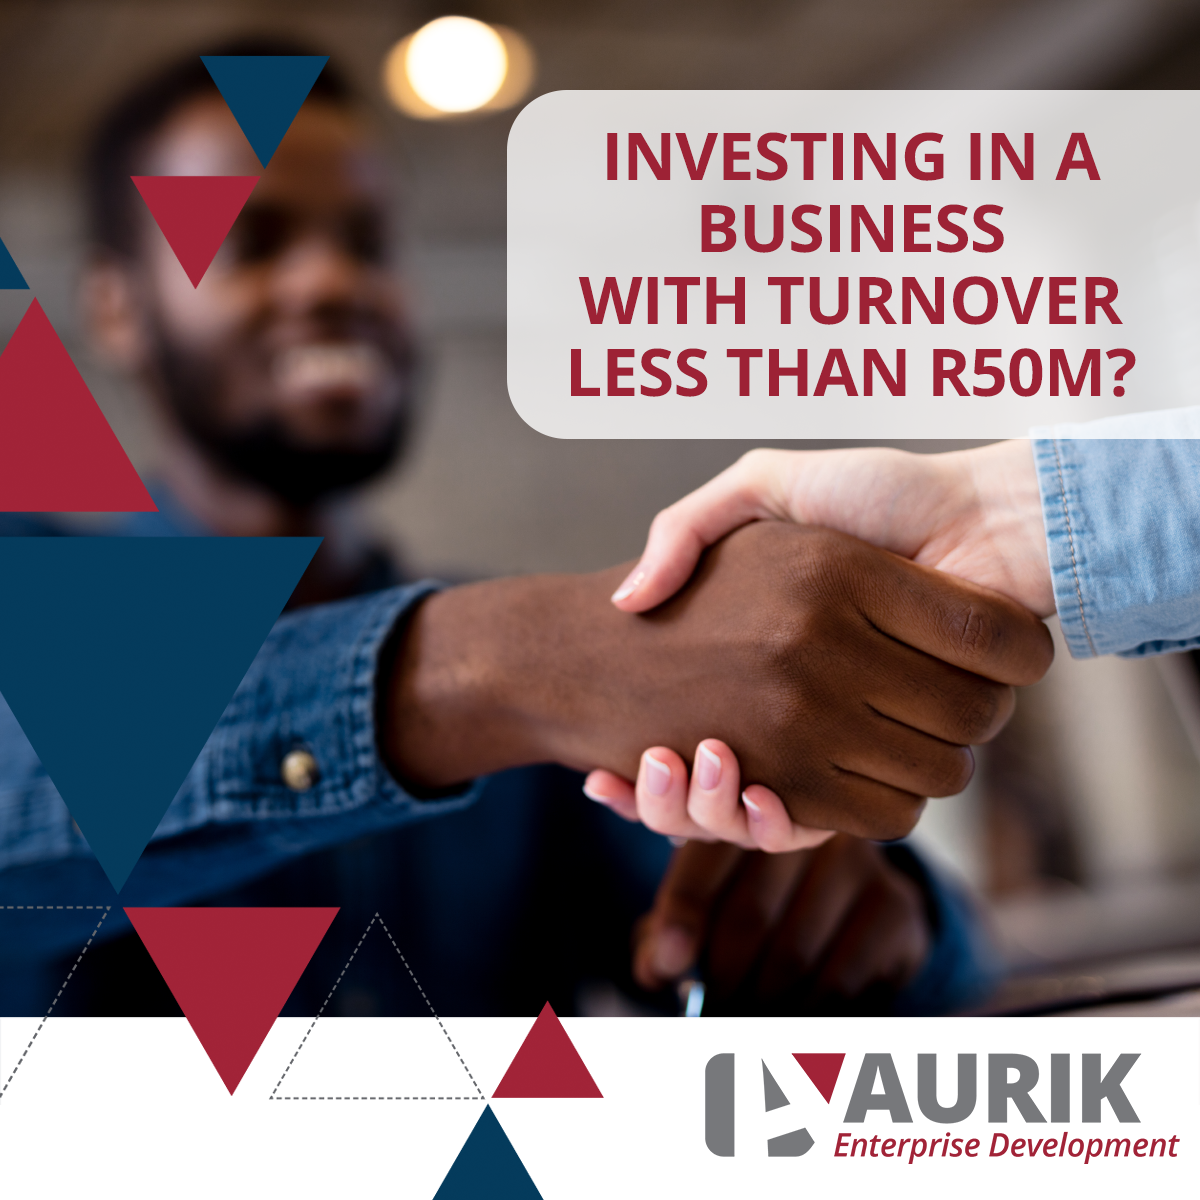 What do you look for when investing into a business with an annual turnover below R50m?